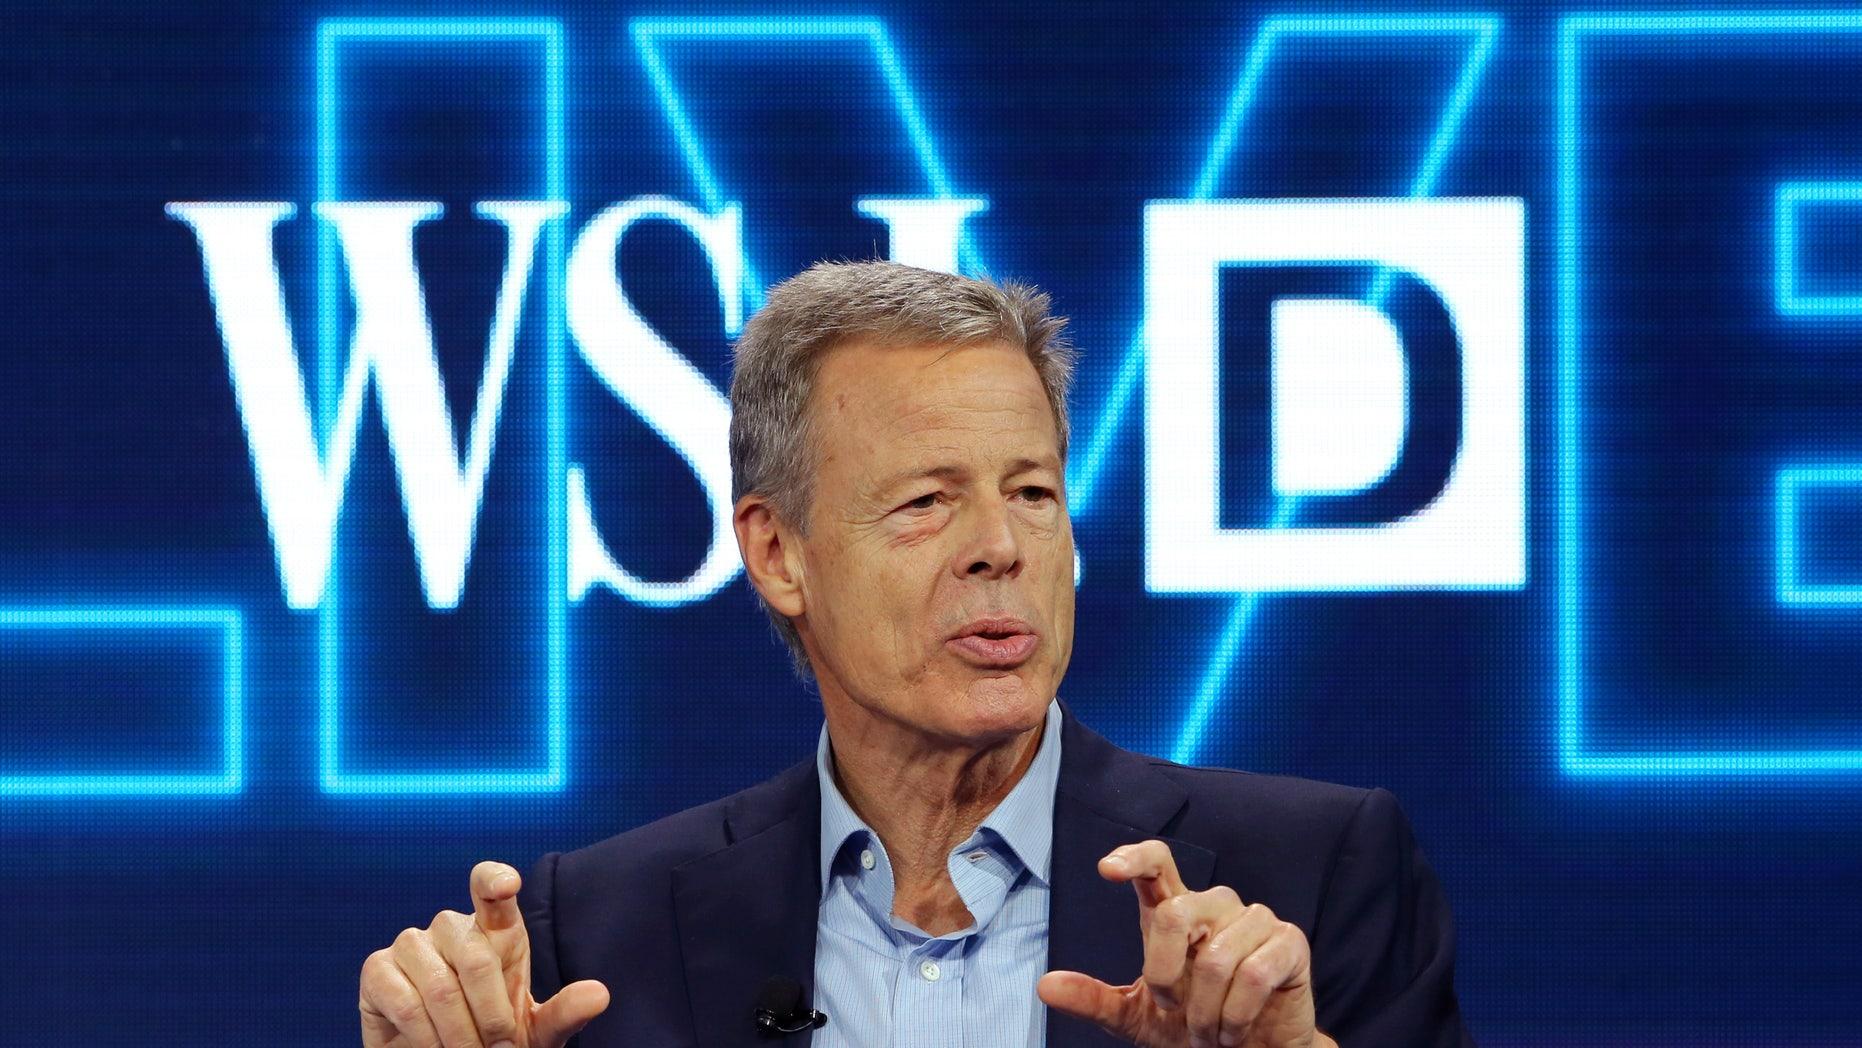 Time Warner Inc CEO Jeff Bewkes discuss his companies proposed merger with AT&T at the WSJD Live conference in Laguna Beach, California, U.S., October 25, 2016.